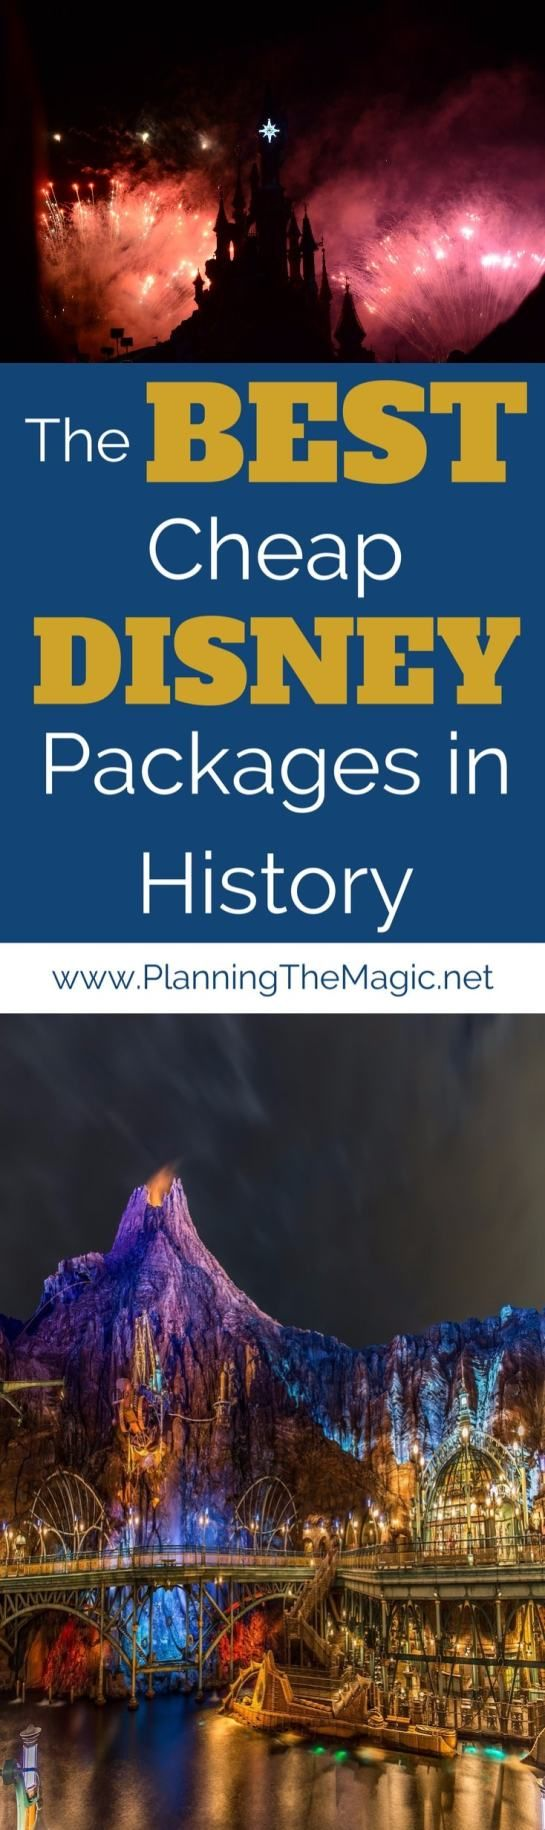 The Best Cheap Disney Packages in History | If you're looking for the BEST Cheap Disney Packages than you're in the right place. Stop reading and take action with these tips!  More information at www.PlanningTheMagic.net